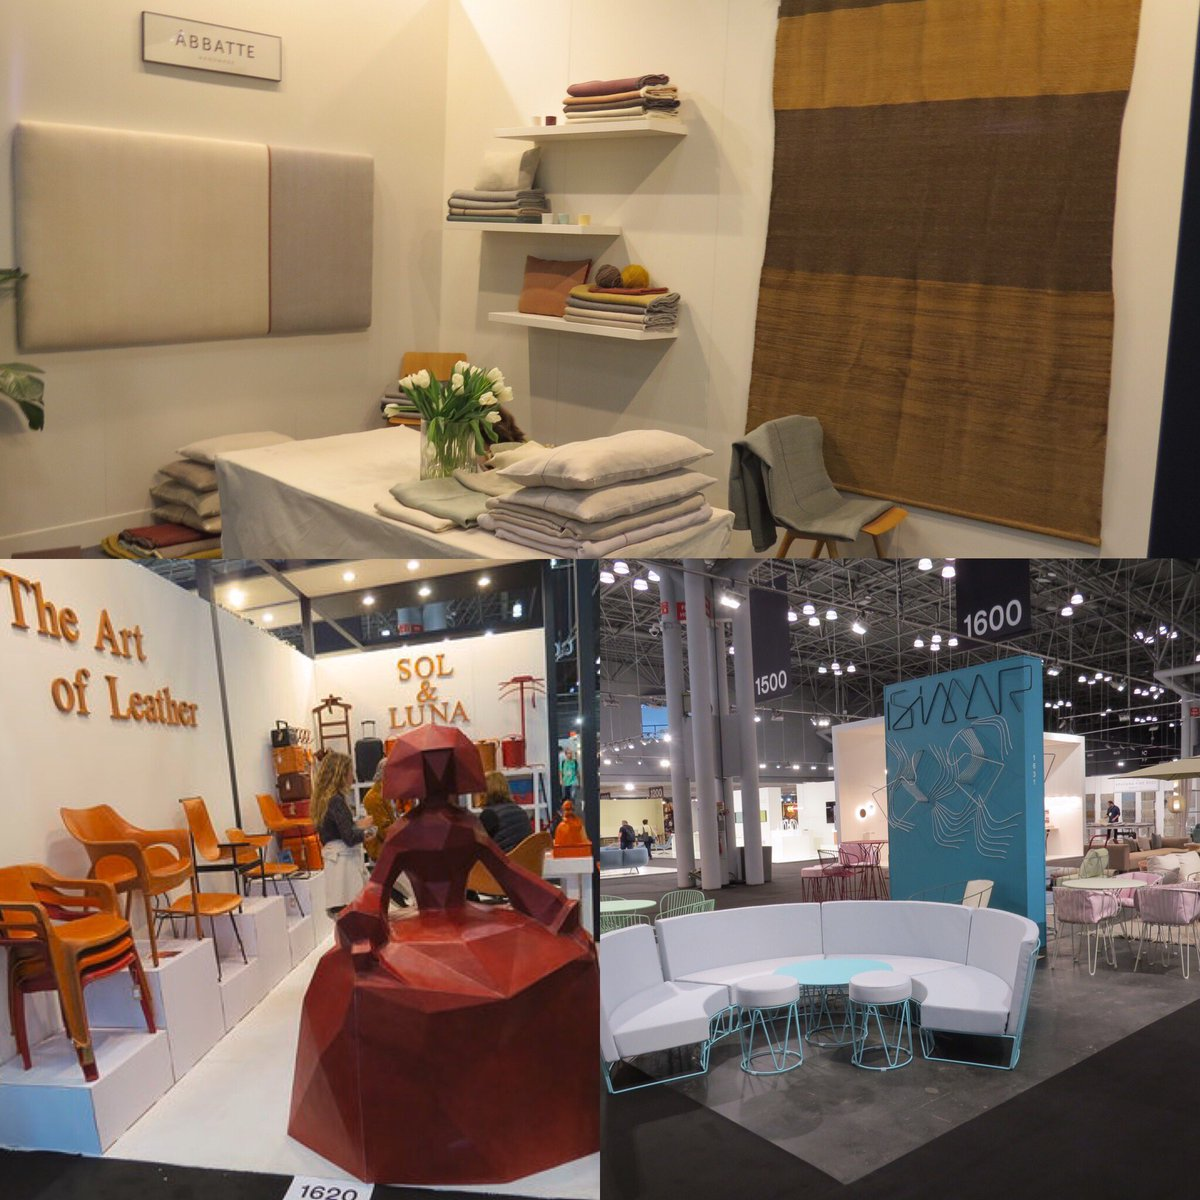 Interiors From Spain On Twitter Spanish Firms And Designers Have Presented Their Latest Collections At Icff Spainicff2019 Icff Icffnyc2019 Interiorsfromspain Spaindoesdesign Https T Co Oudvznwbwc